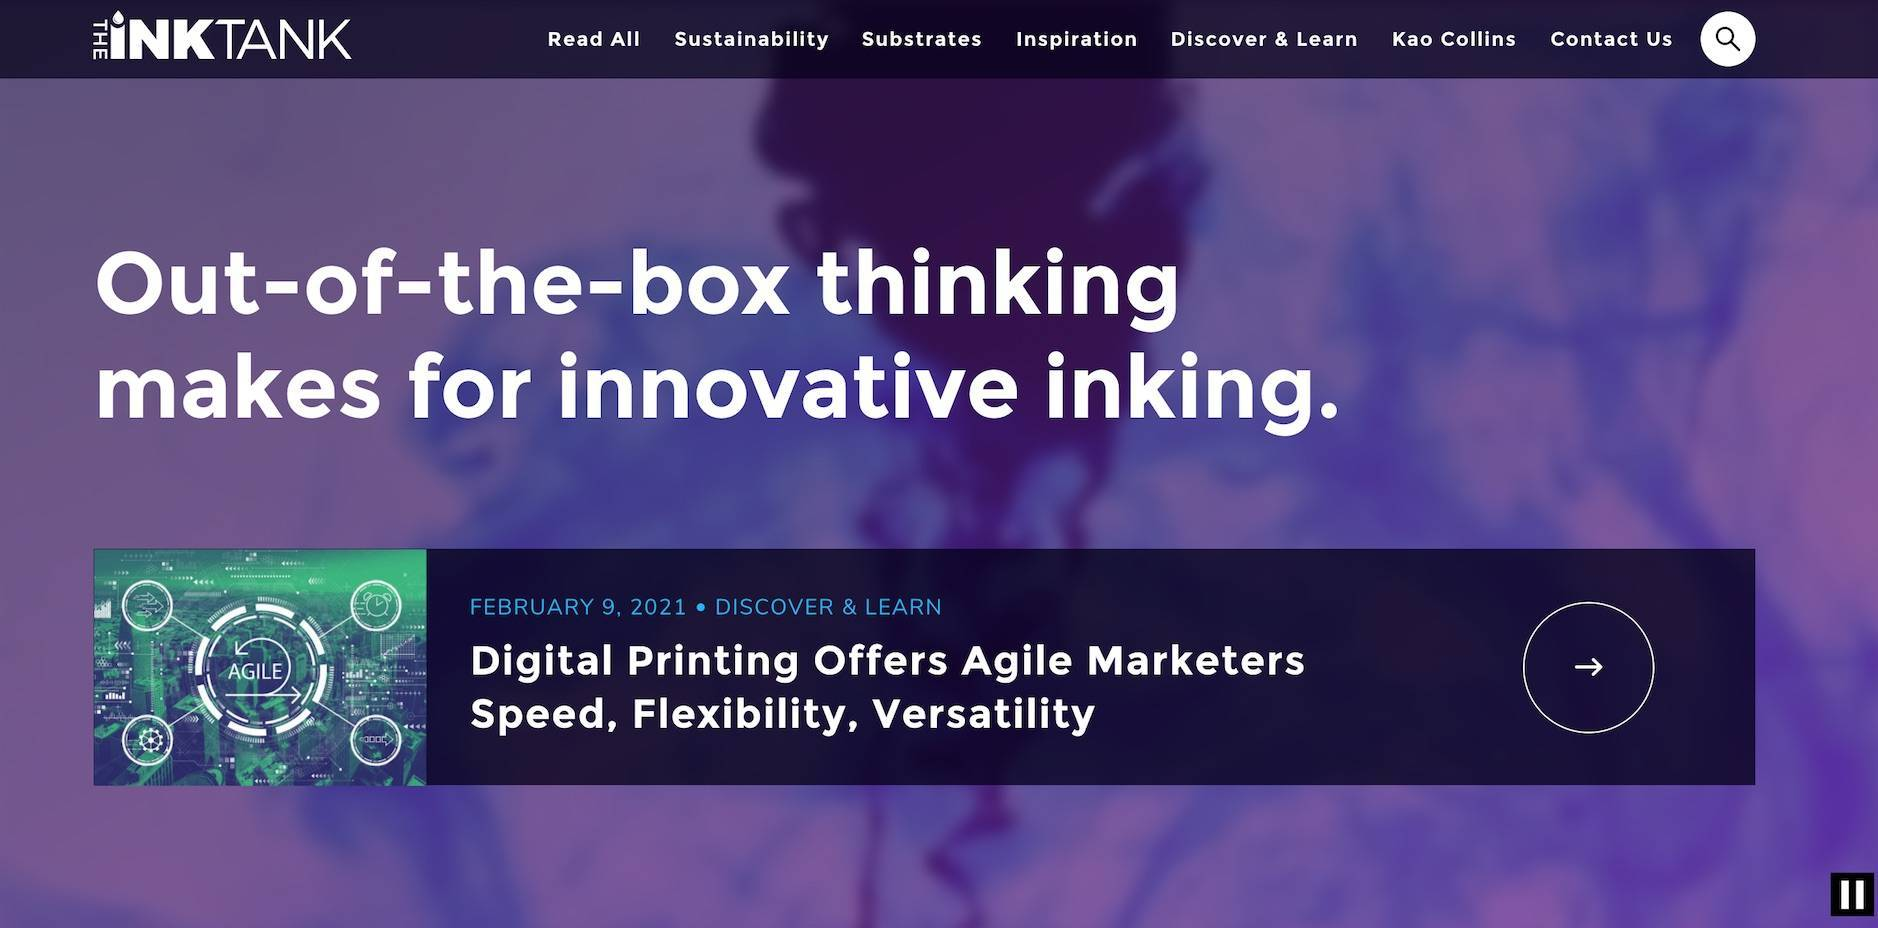 the homepage of Kao Collin's InkTank b2b website that features great quality content